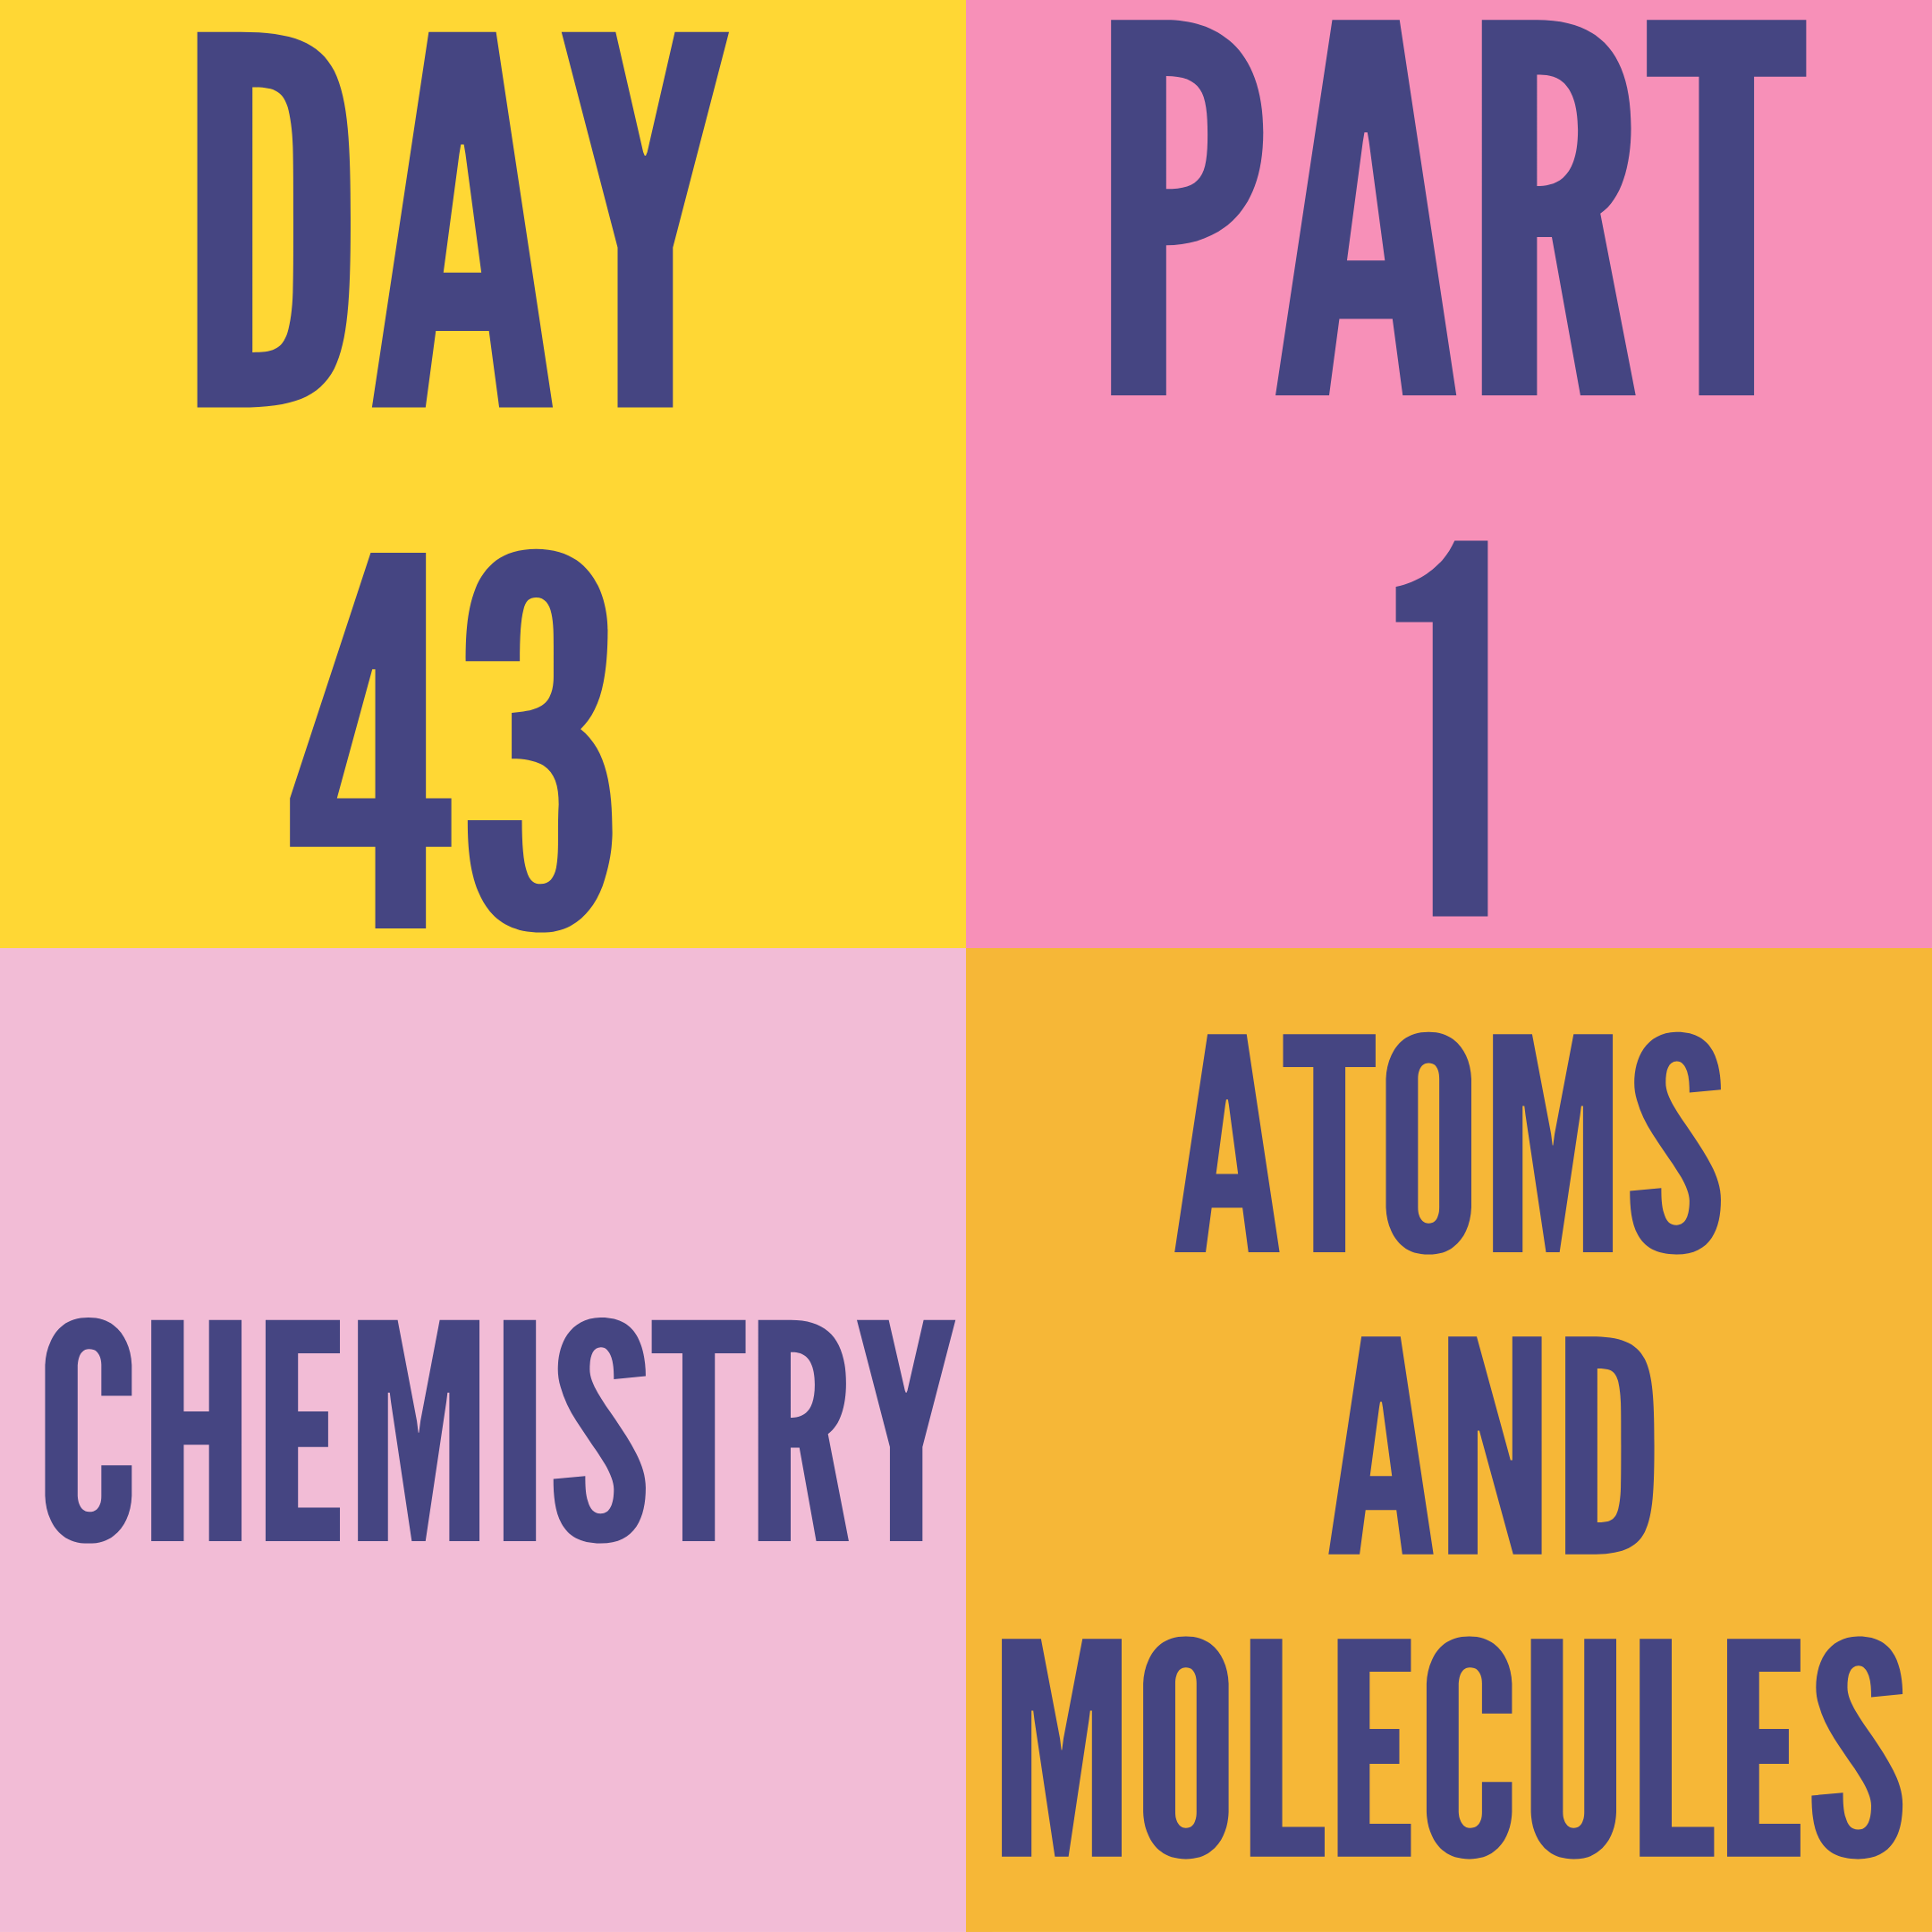 DAY-43 PART-1 ATOMS AND MOLECULES